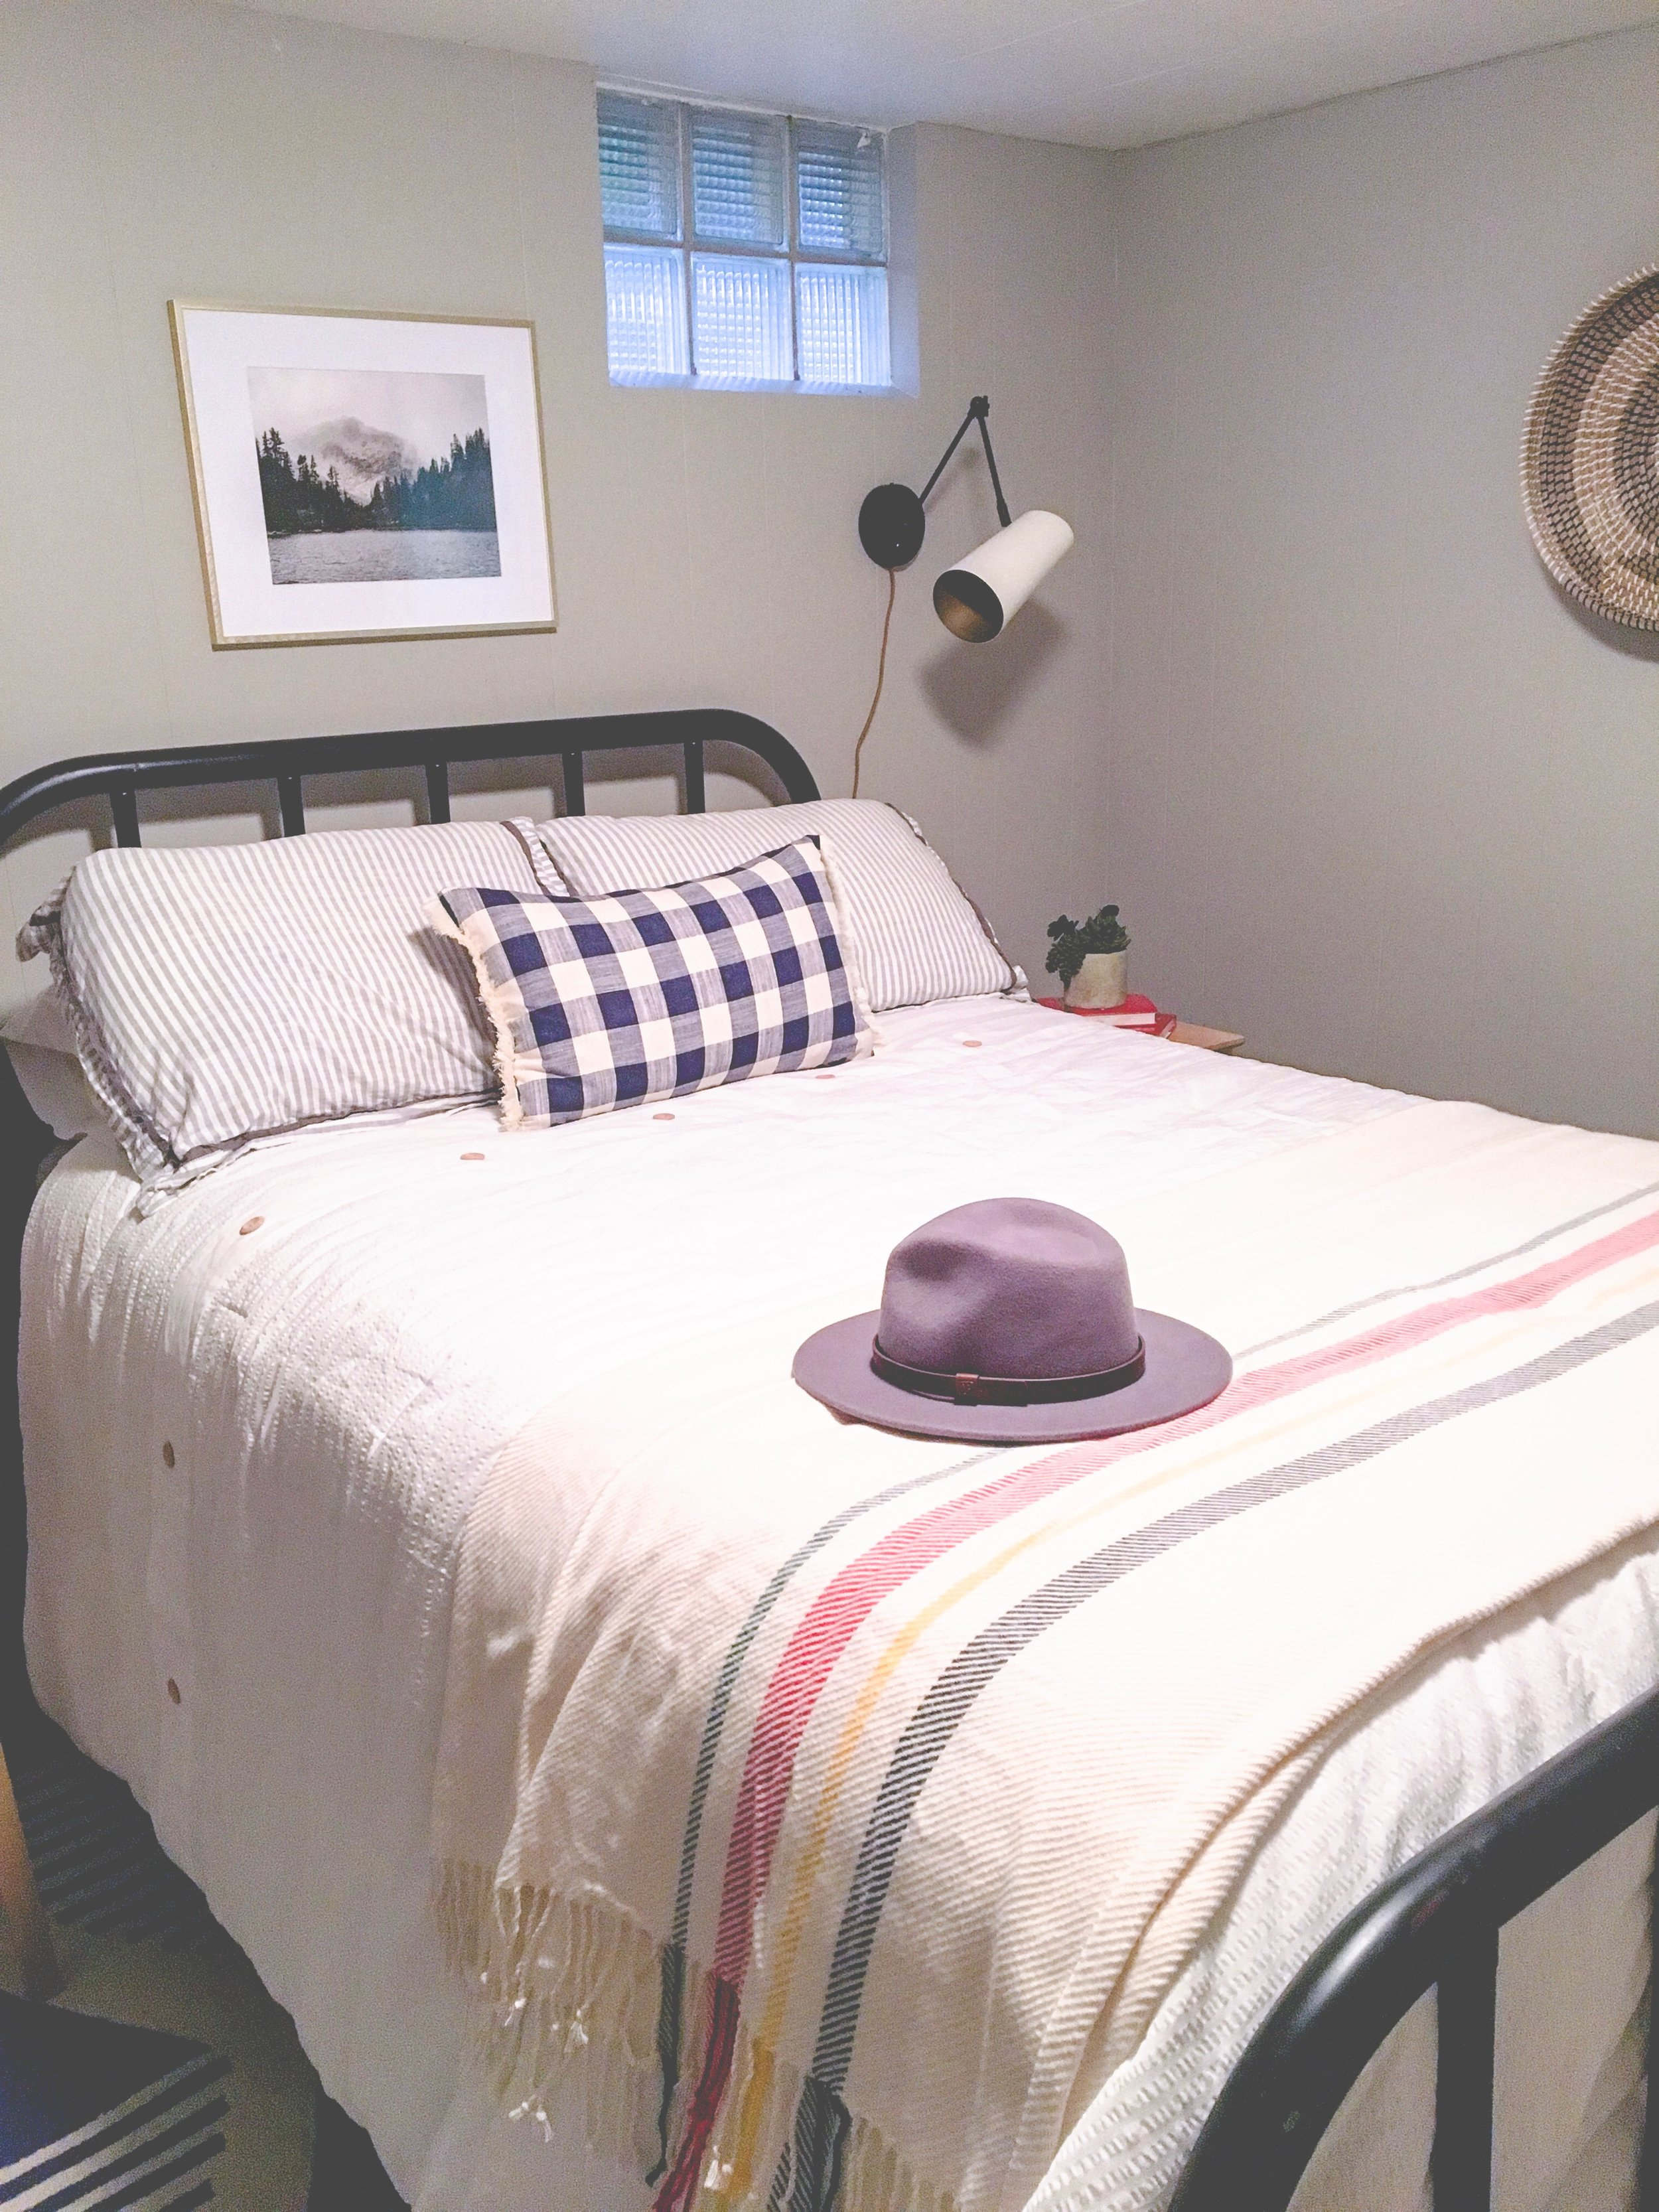 Our boring guest room gets a whole new modern cozy chic cabin look! Learn how to redecorate your guest room so it feels cozy and welcoming.